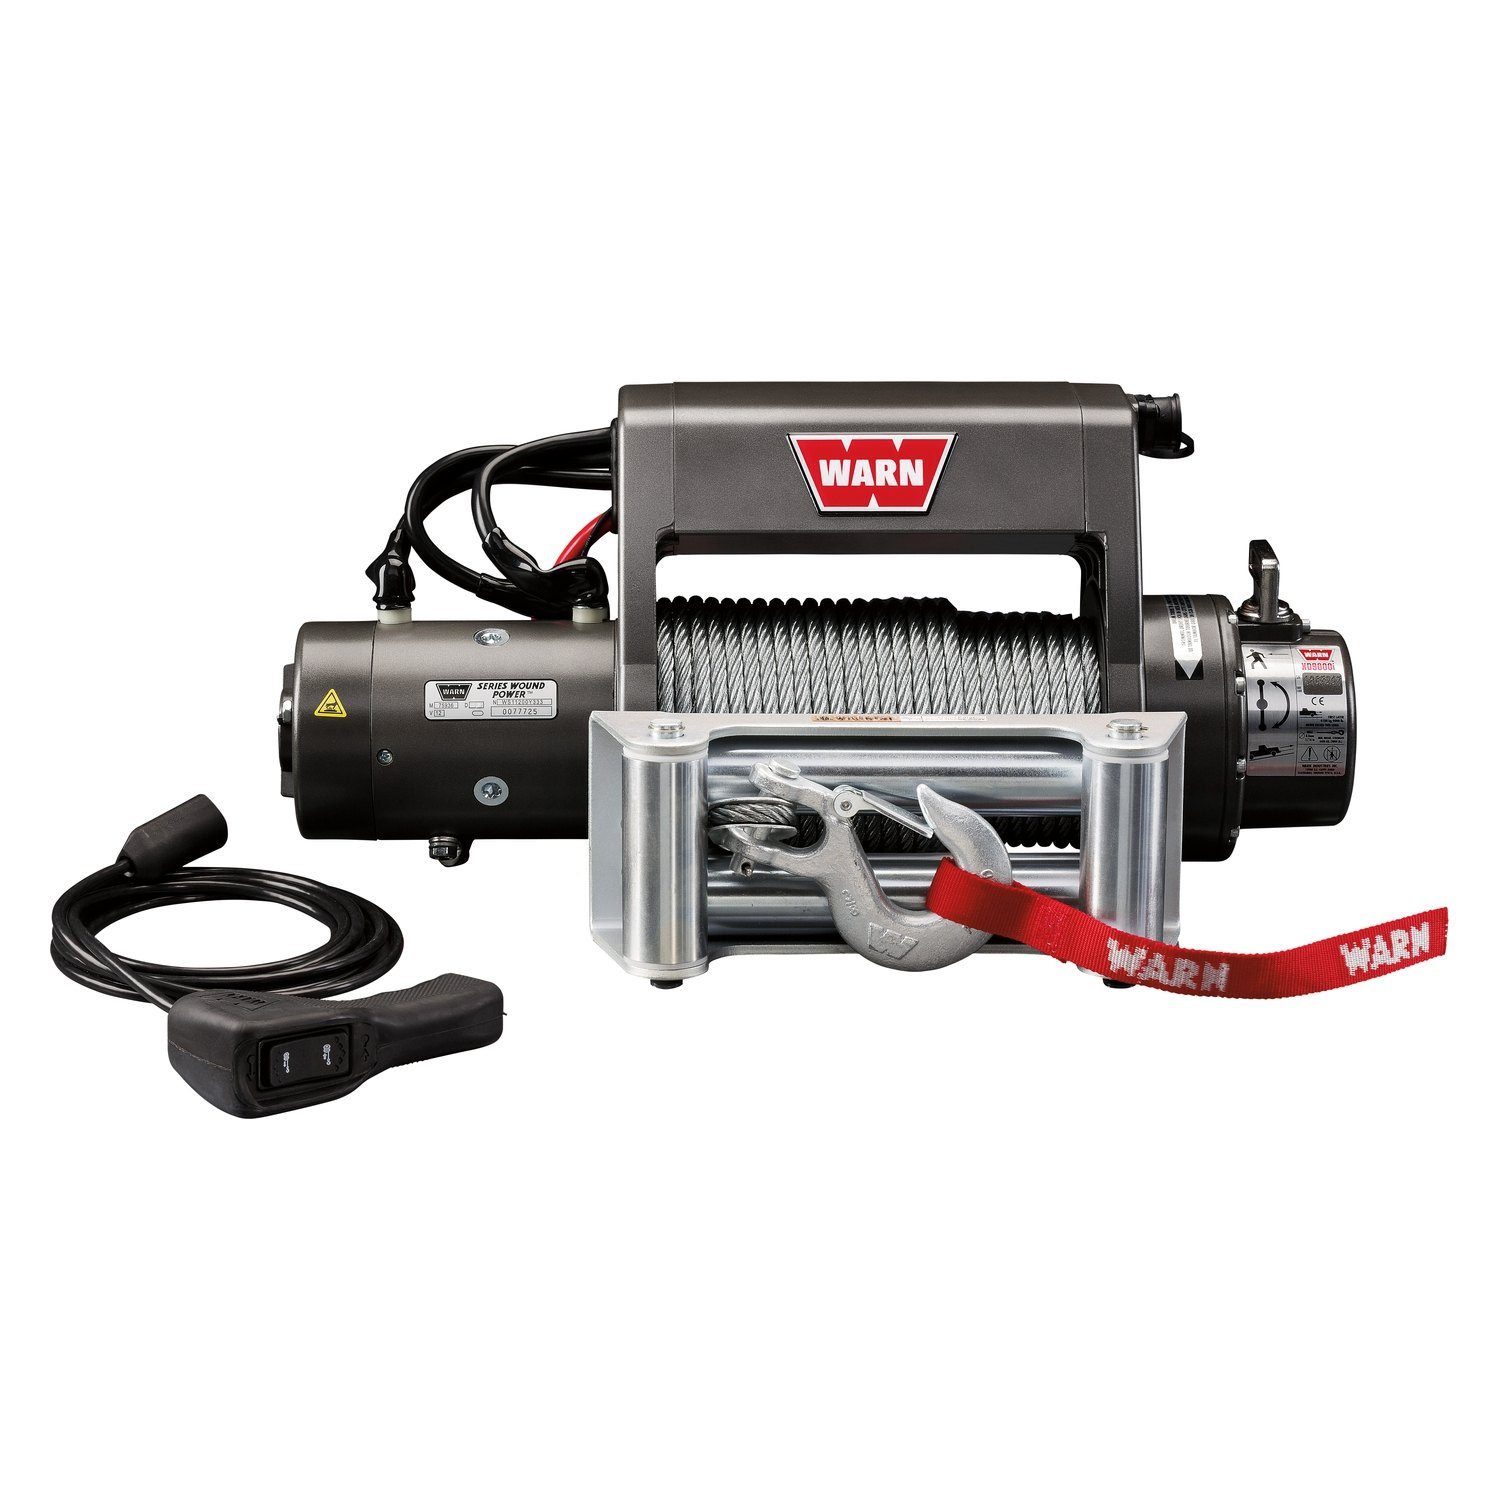 Warn 9000 Lbs Xd9000i Premuim Series Self Recovery Electric Winch Wiring Diagram Free Picture Ropewarn With Wire